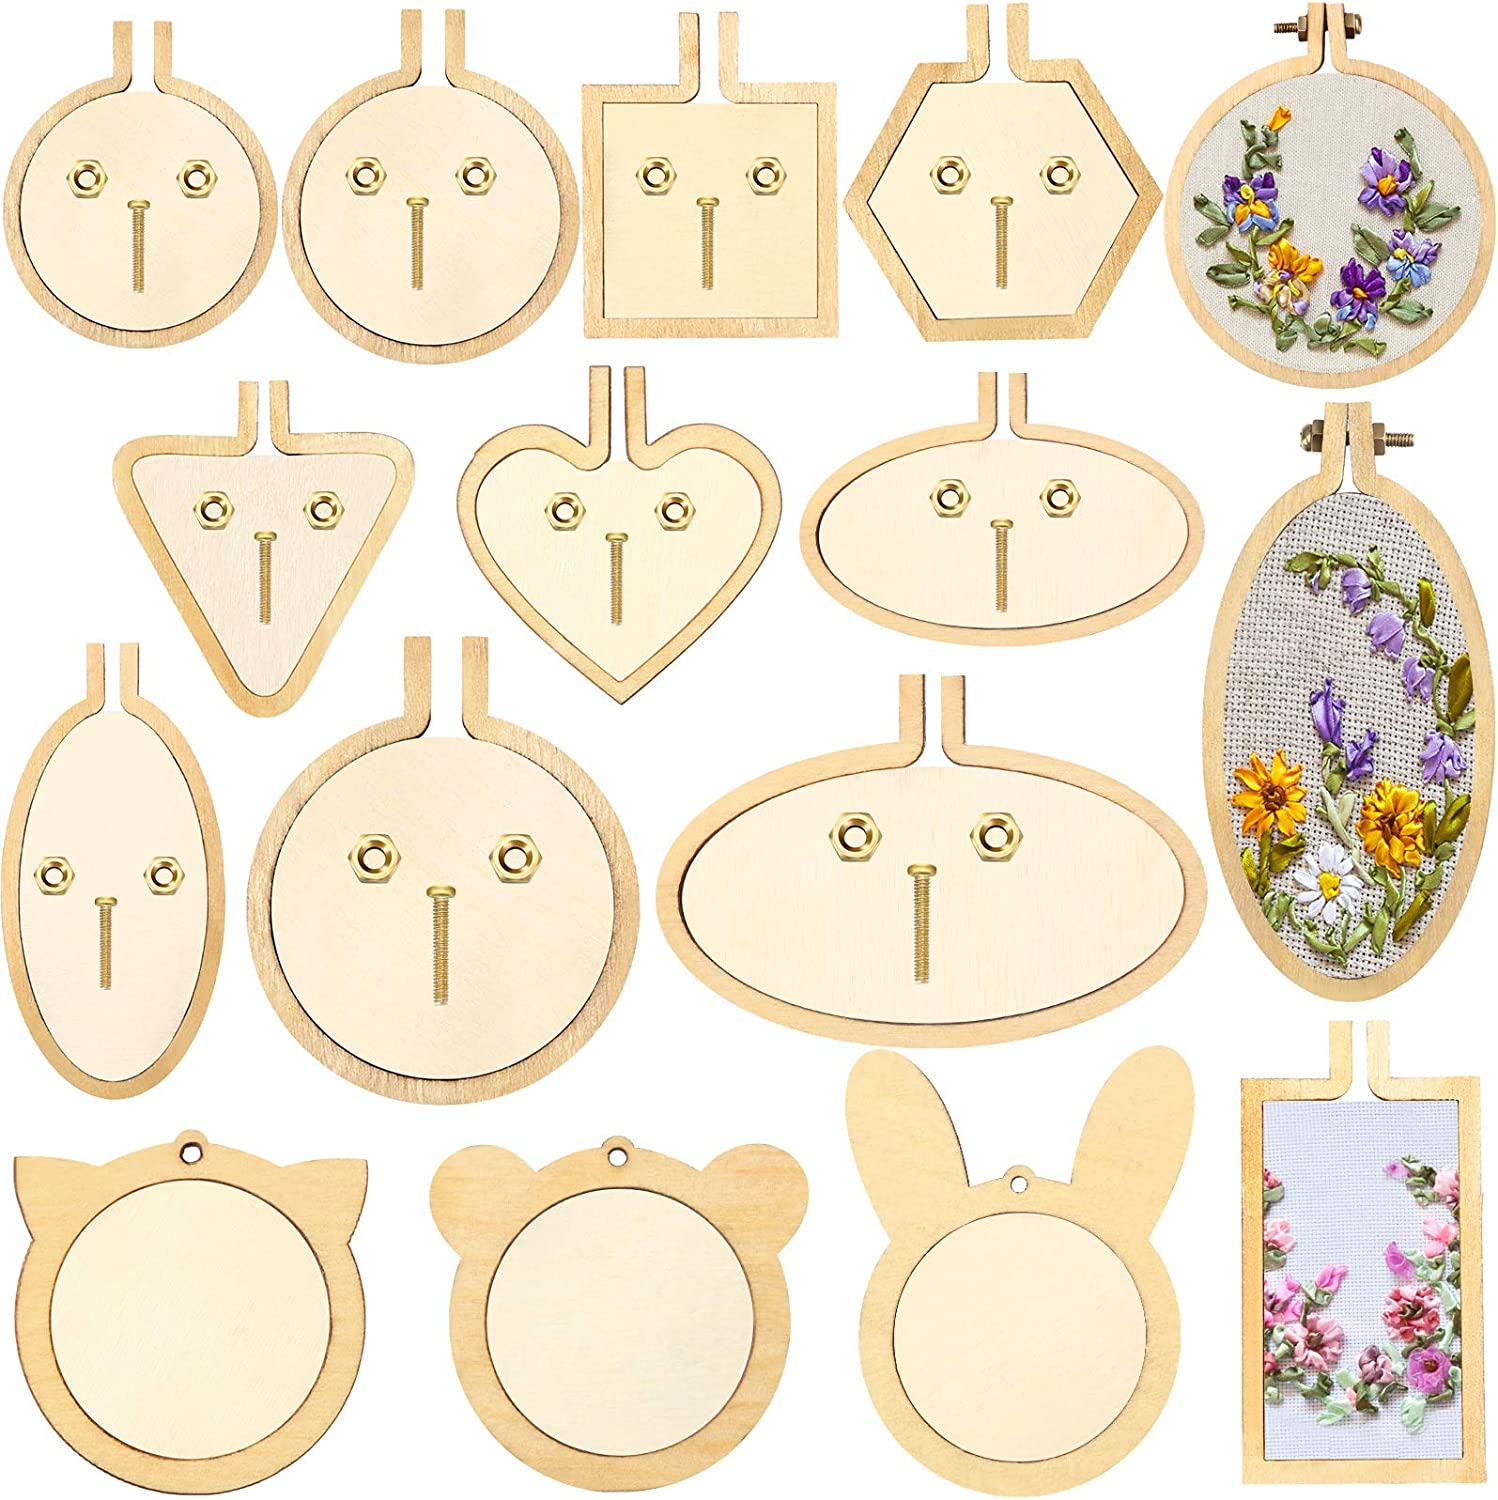 16 Sets Mini Embroidery Hoop Small Regular dealer Stitch M Popular product Crossing Wooden